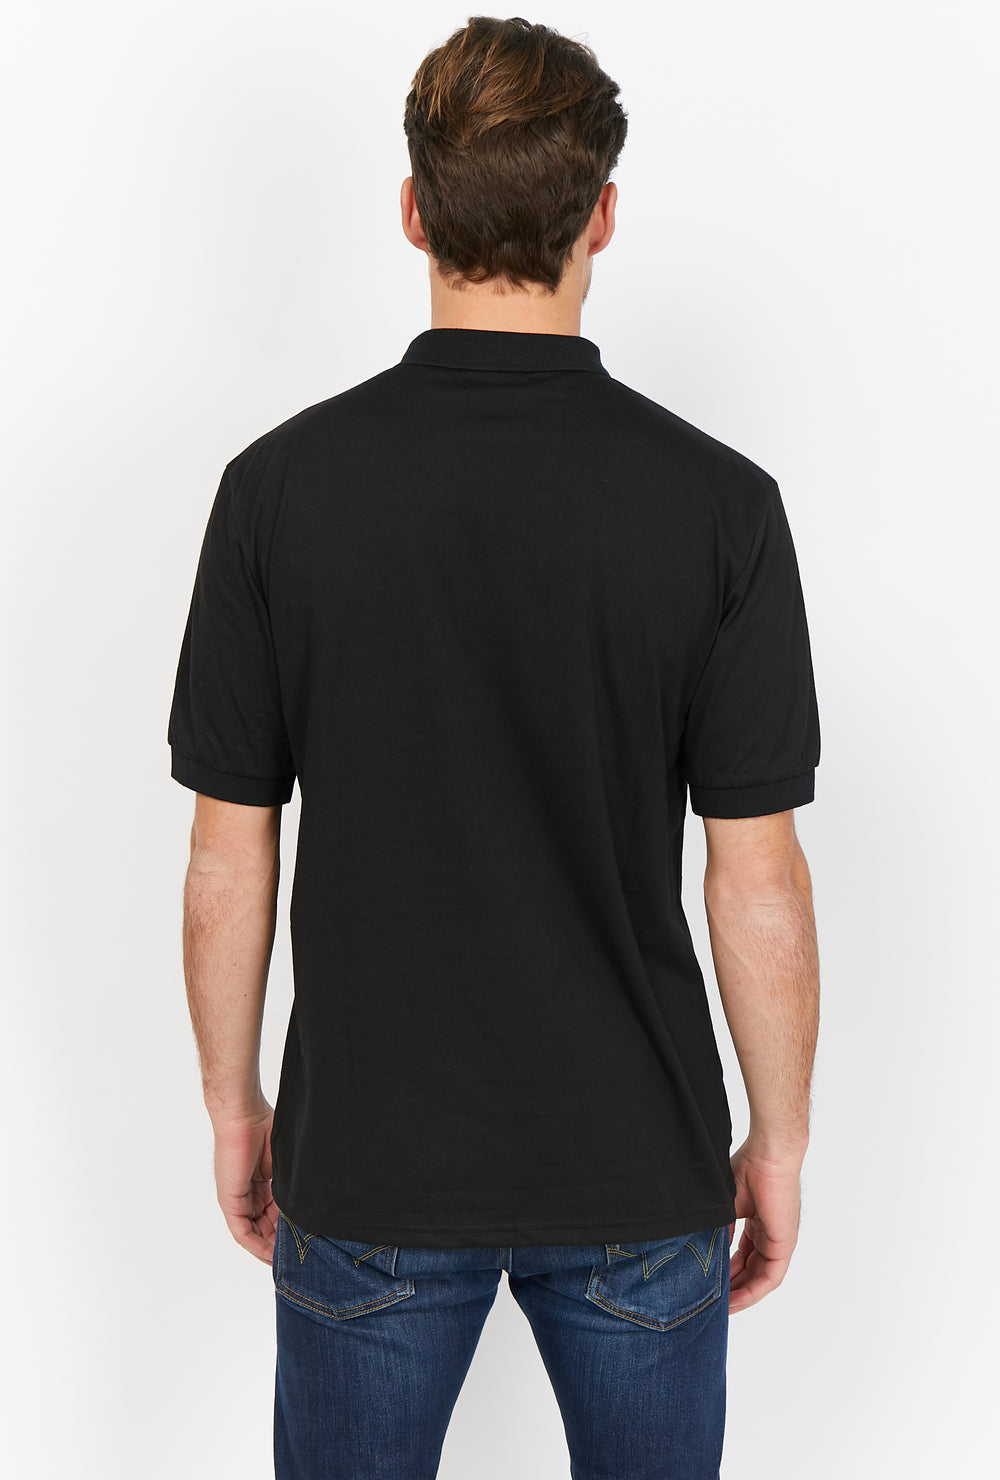 Manuel Black Organic Polo Shirt